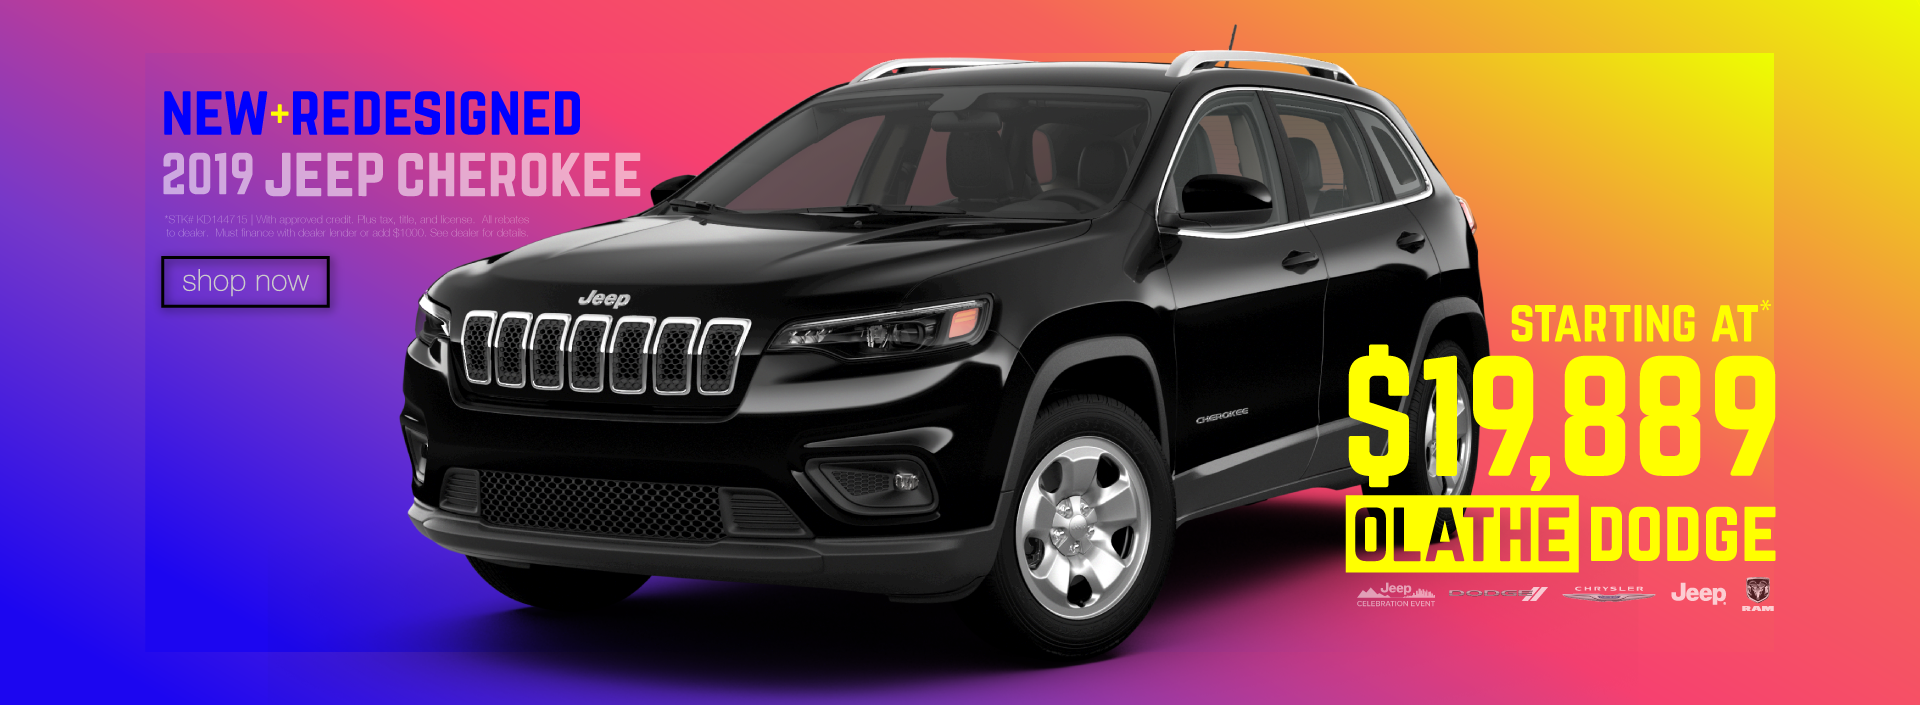 bertera west cherokee discount ma qualify prior cjdr with or dodge dealer of ram approval be to other coupon valid credit springfield tier any not jeep chrysler cannot deals on used program